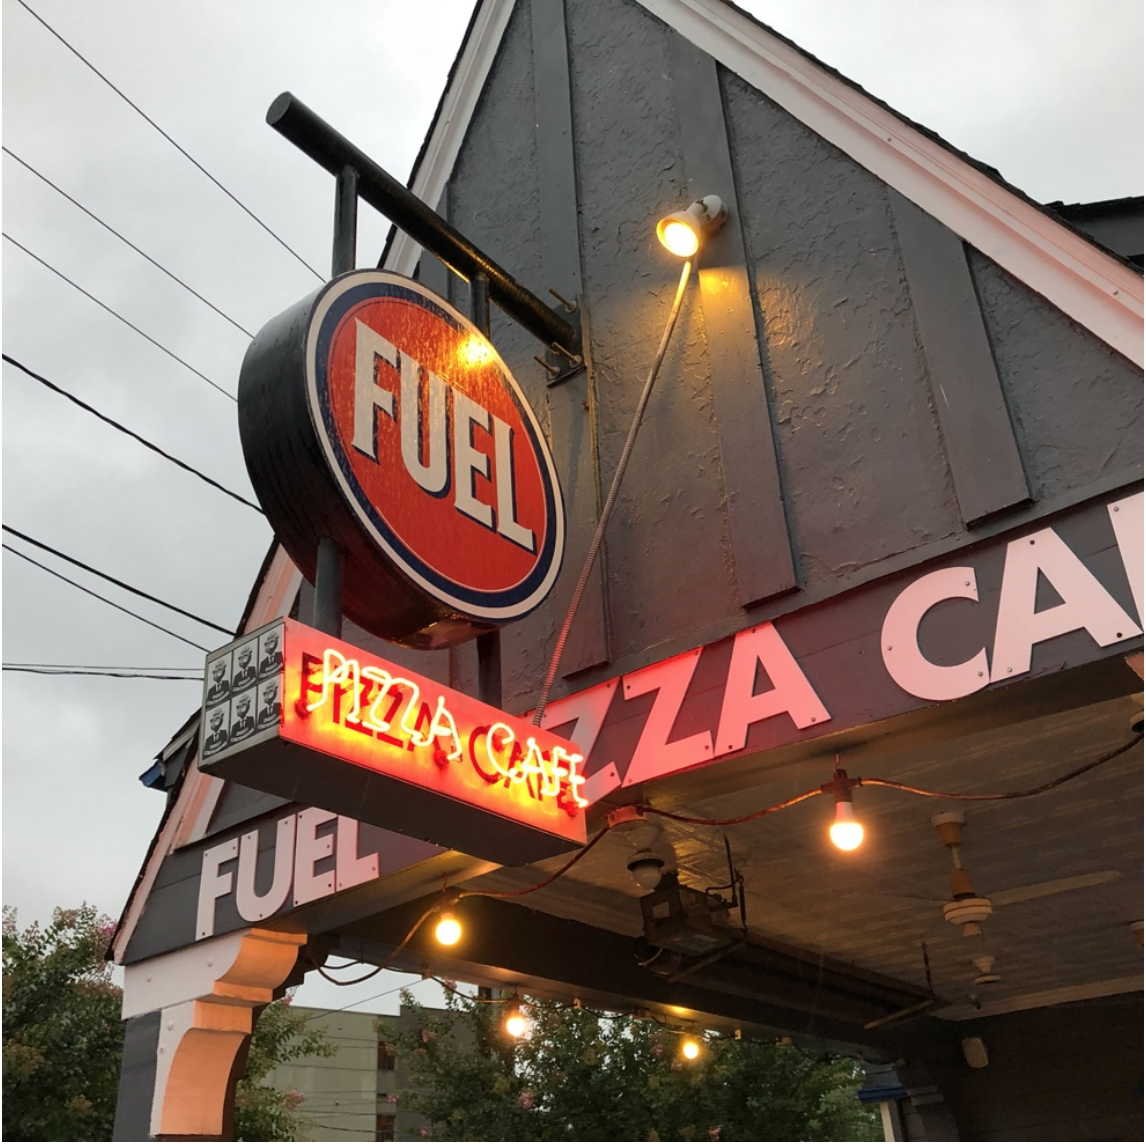 We're back where we started – if Fuel Pizza is open, treat yourself to a cold drink and a hot slice.